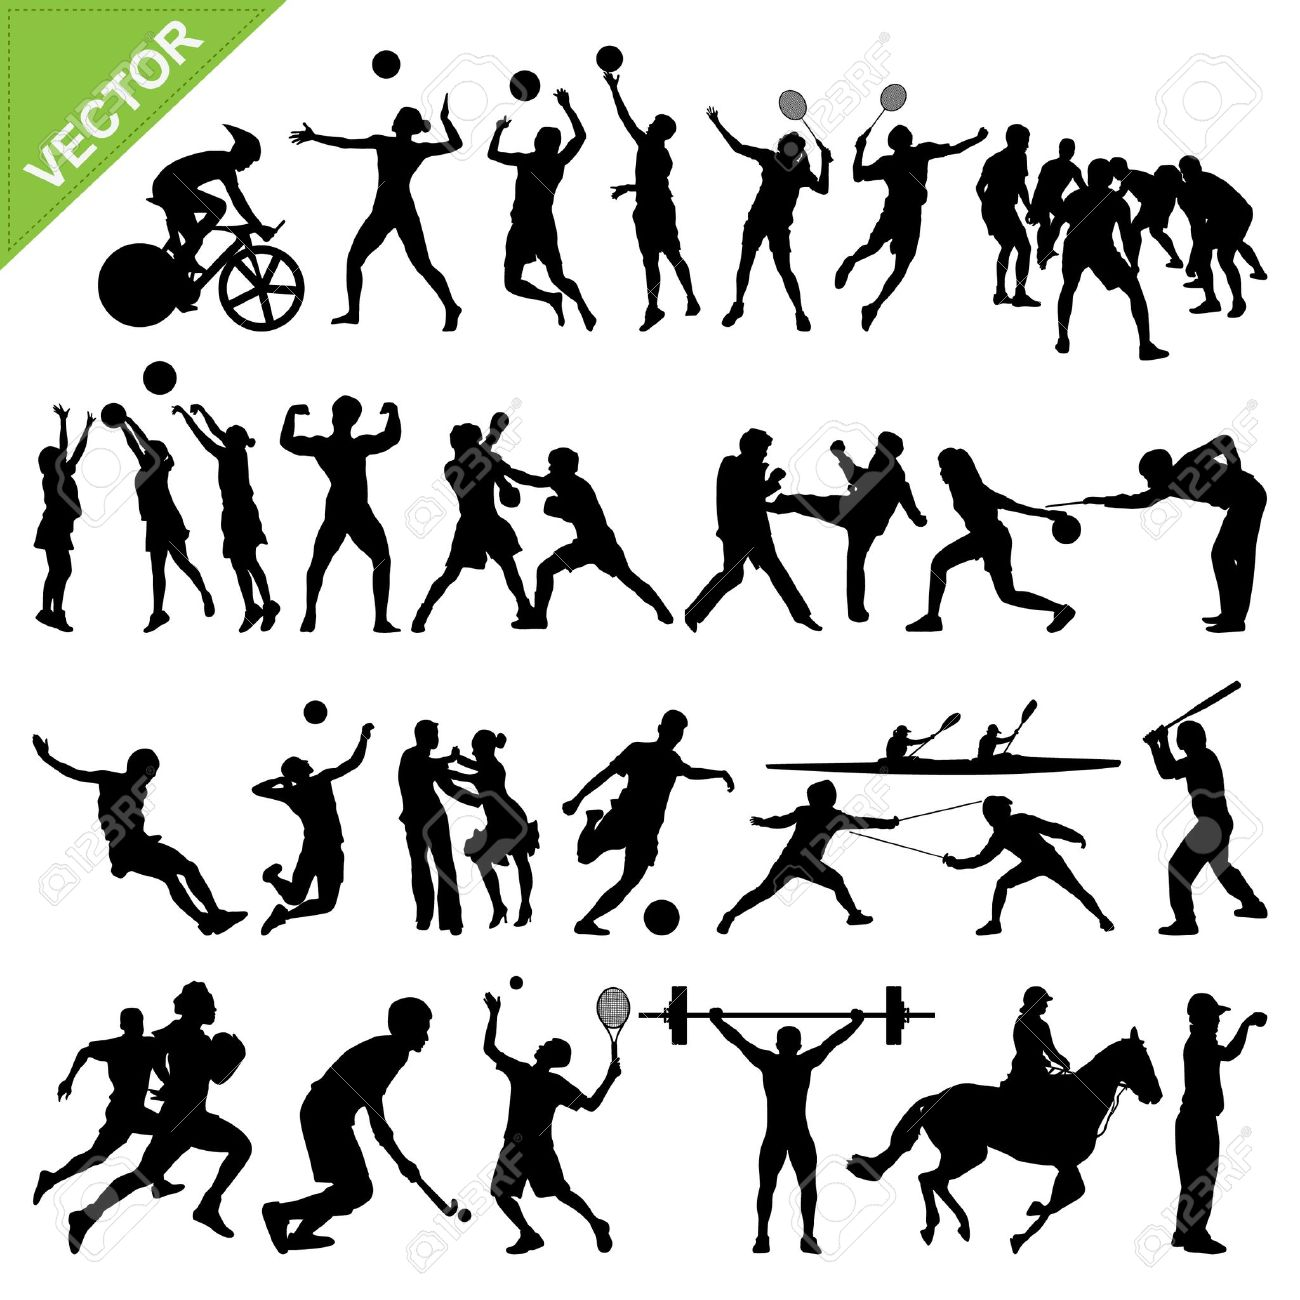 Sport players silhouettes Stock Vector - 18544640